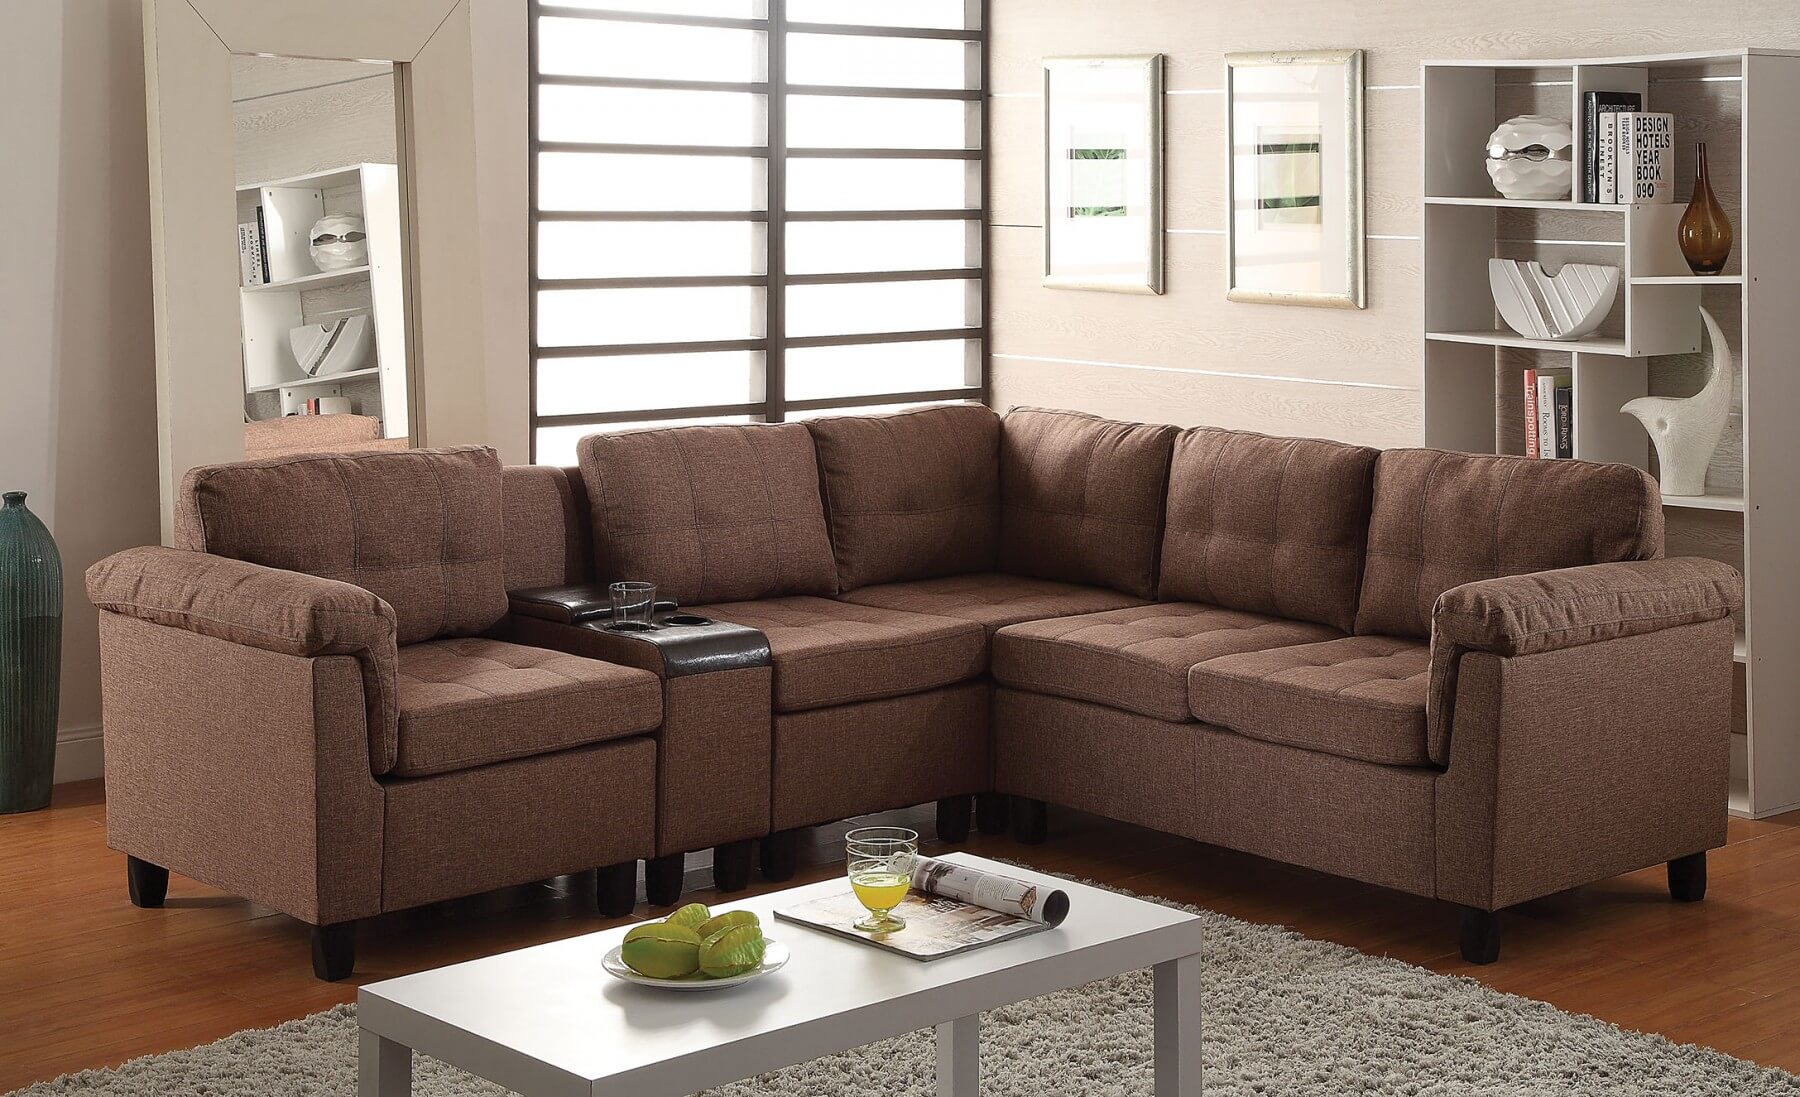 Cleavon Sectional Left Arm Facing Brown Buy Online at Best Price - SohoMod : corduroy sectional - Sectionals, Sofas & Couches